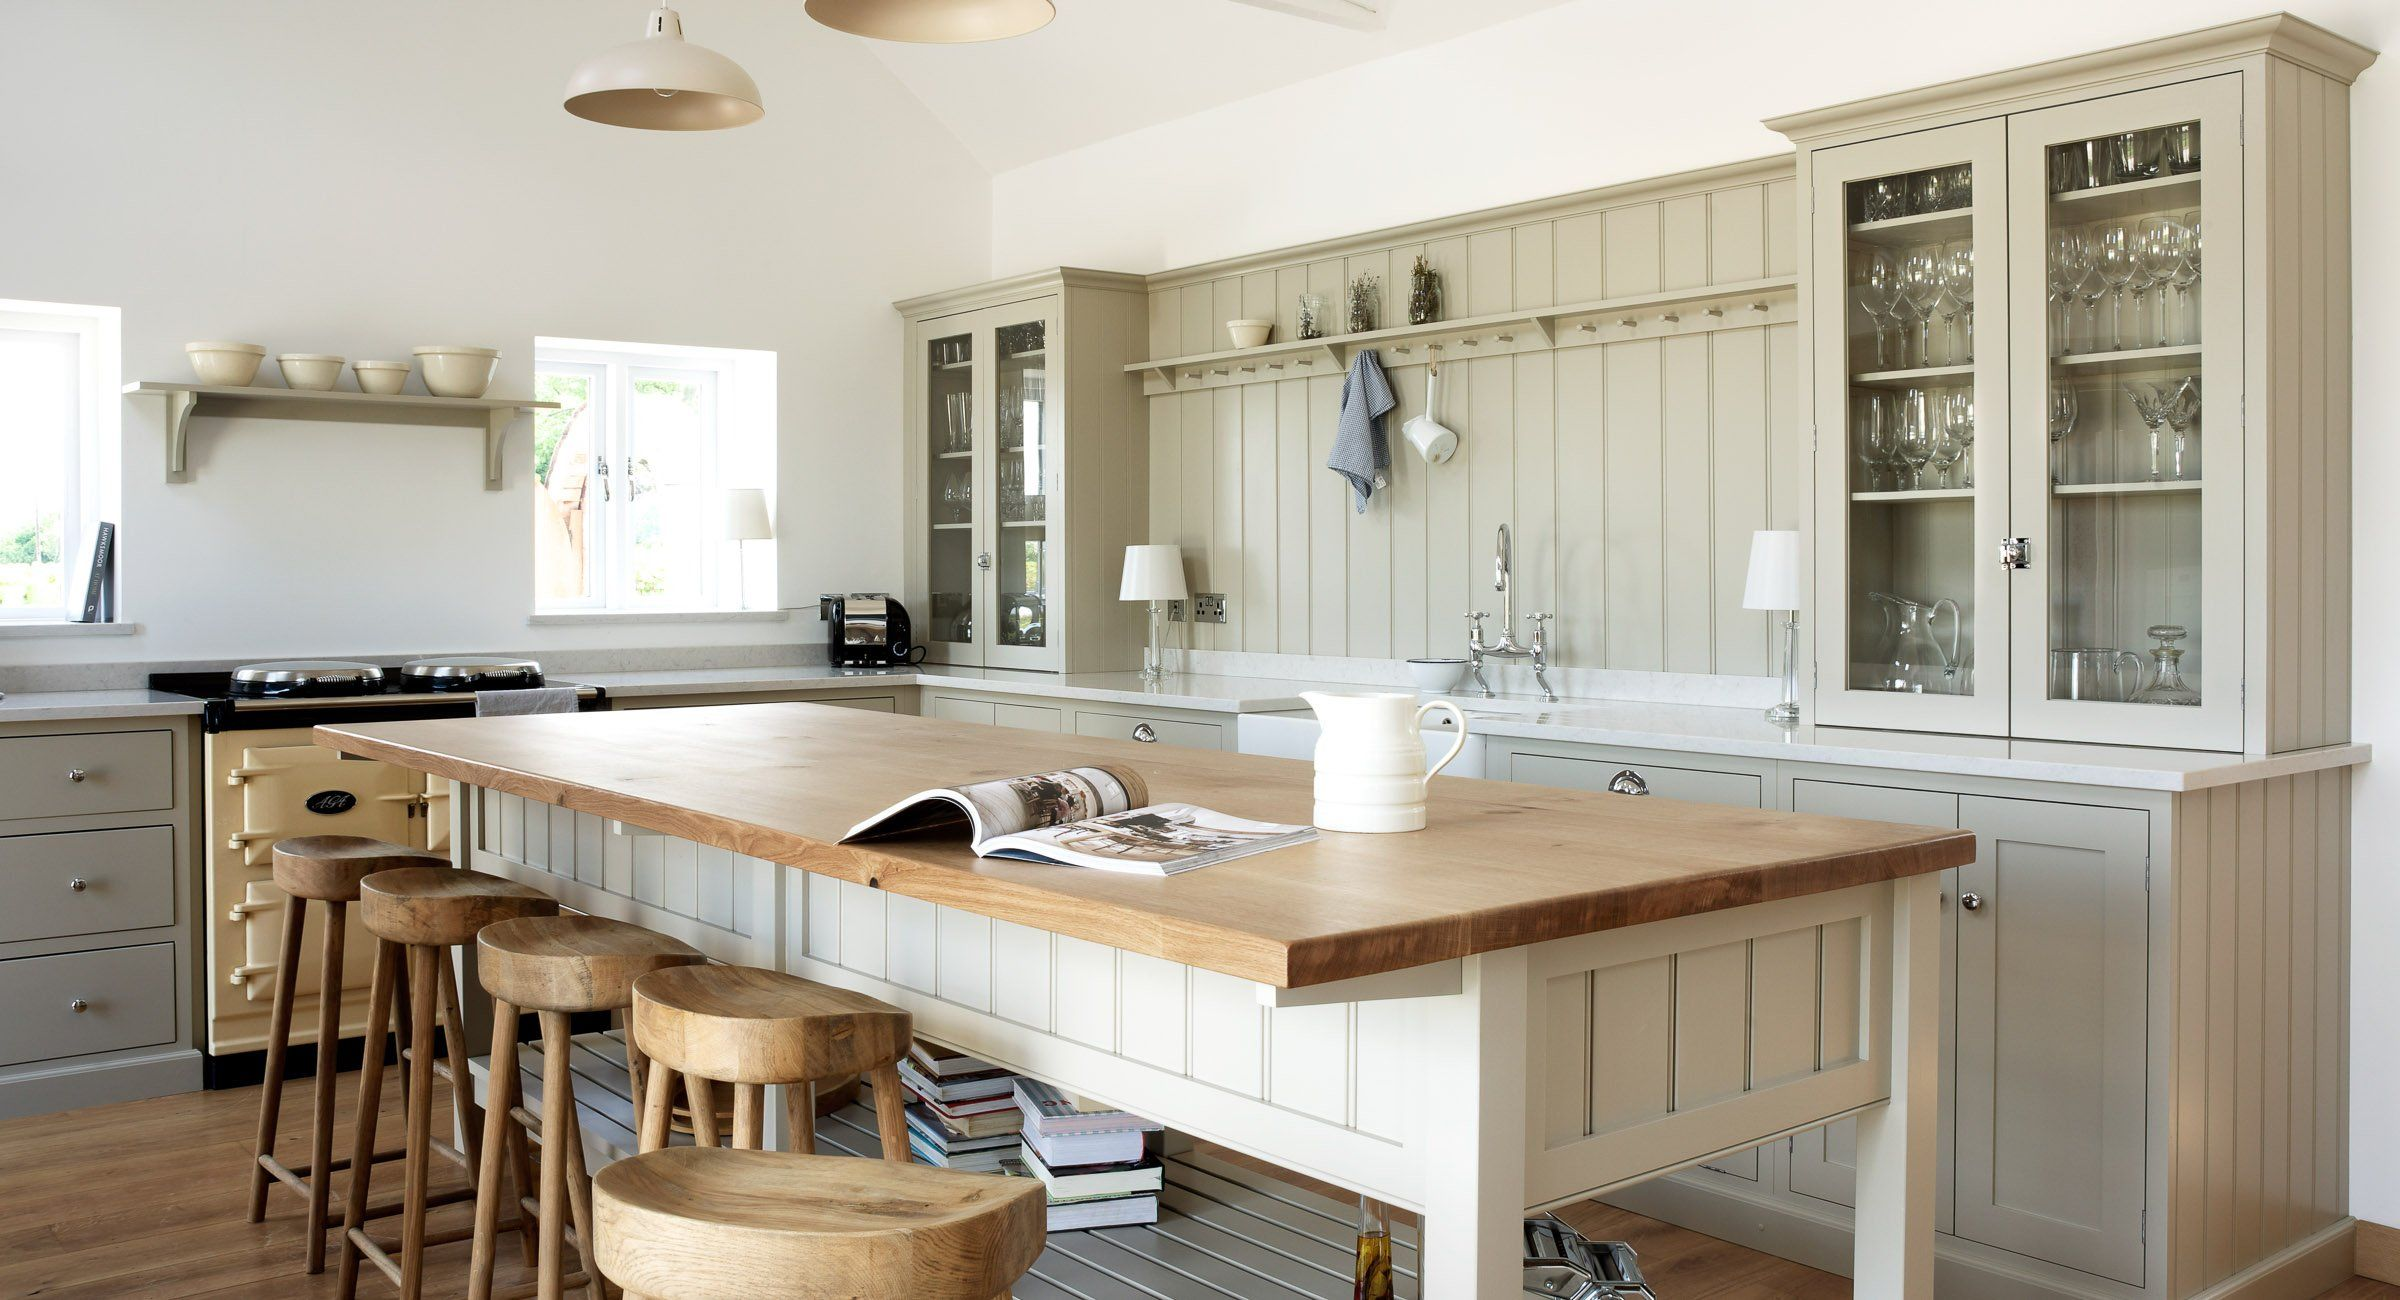 Warwickshire Barn Kitchen | deVOL Kitchens possible design for kitchen island minus tongue & groove.